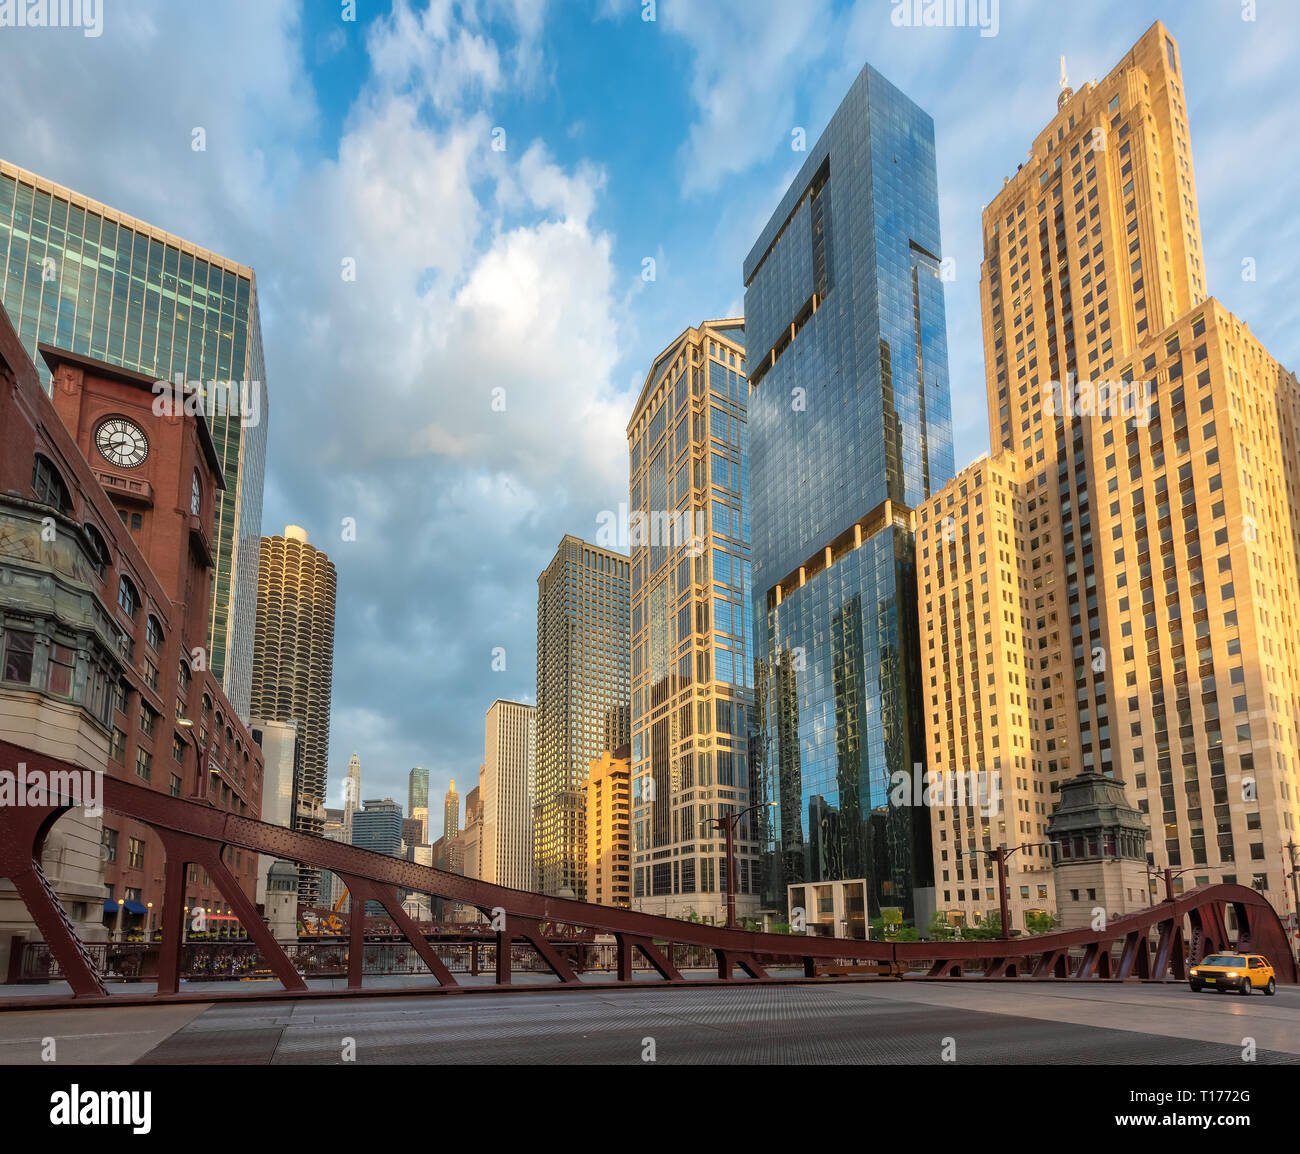 Chicago city and bridges at sunset in Chicago, Illinois - Stock Image